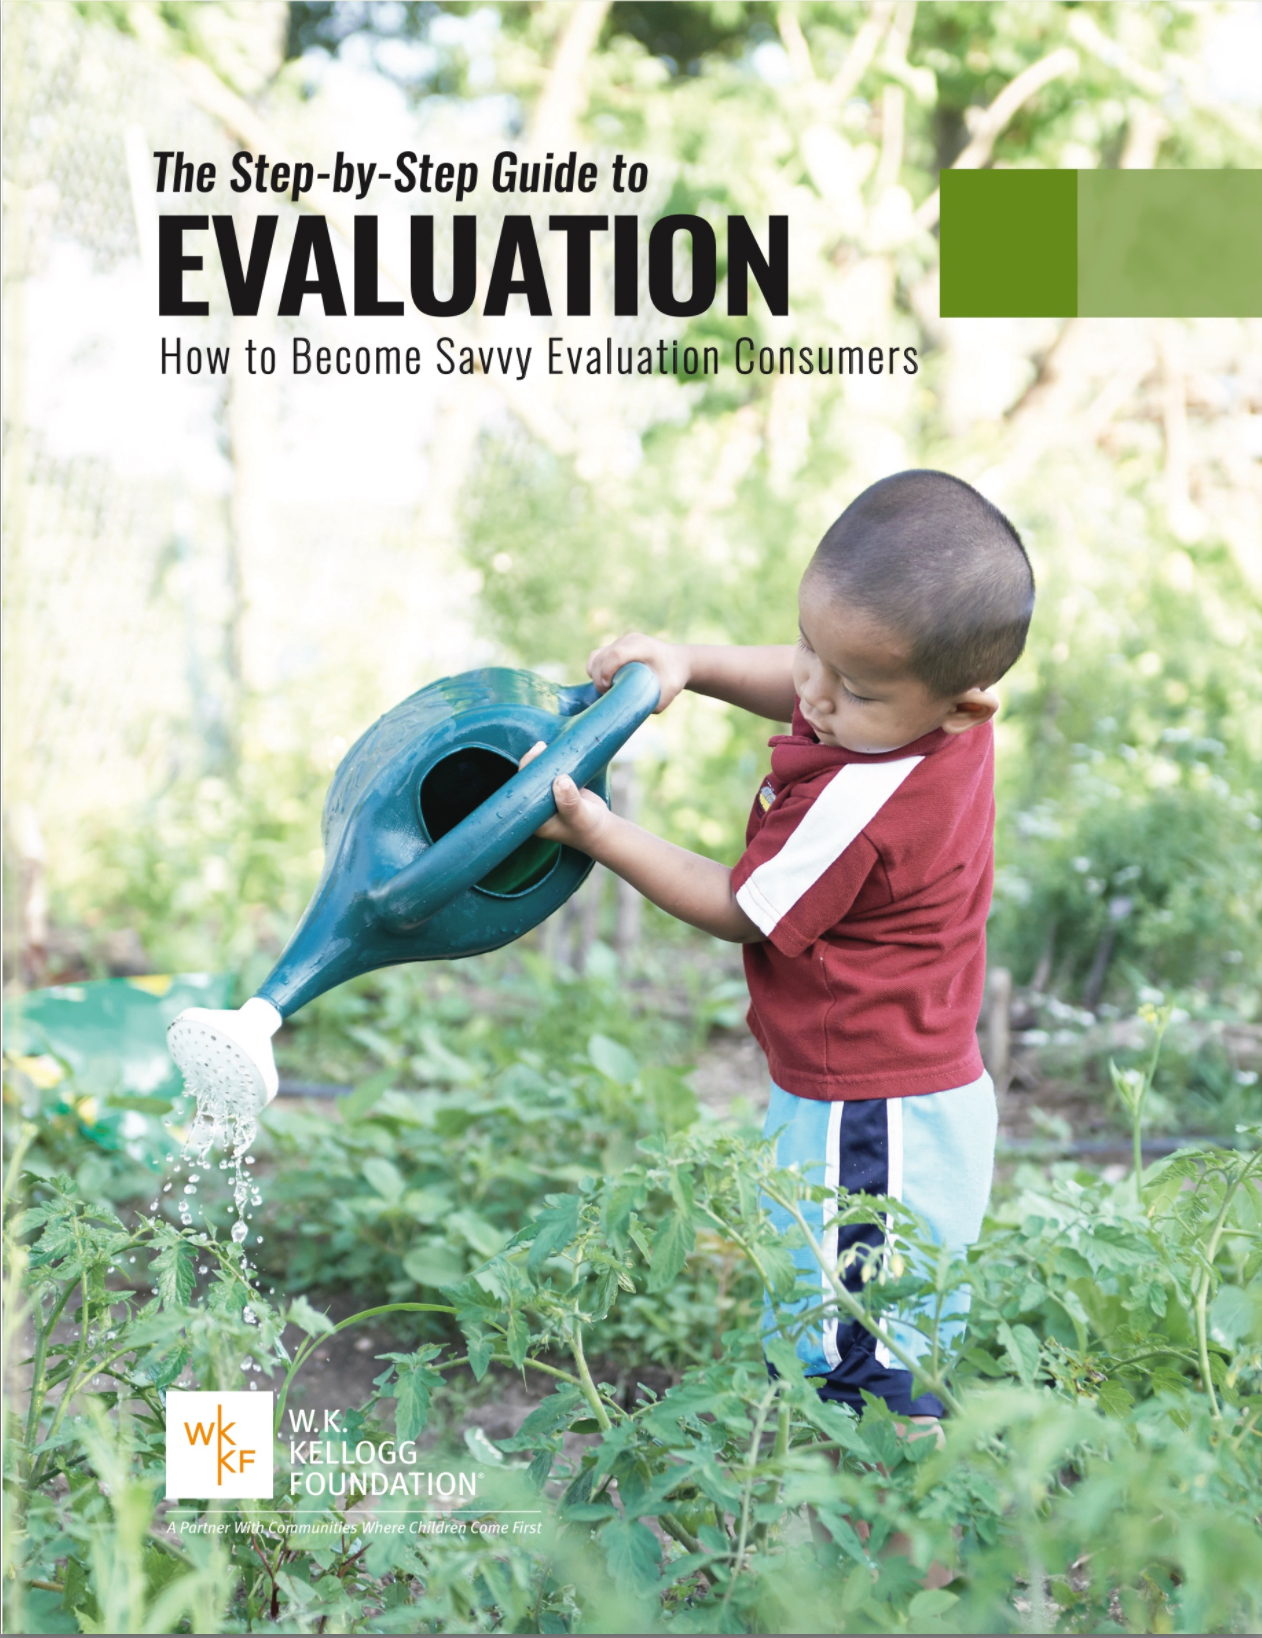 W.K. Kellogg Foundation | The Step-by-Step Guide to Evaluation